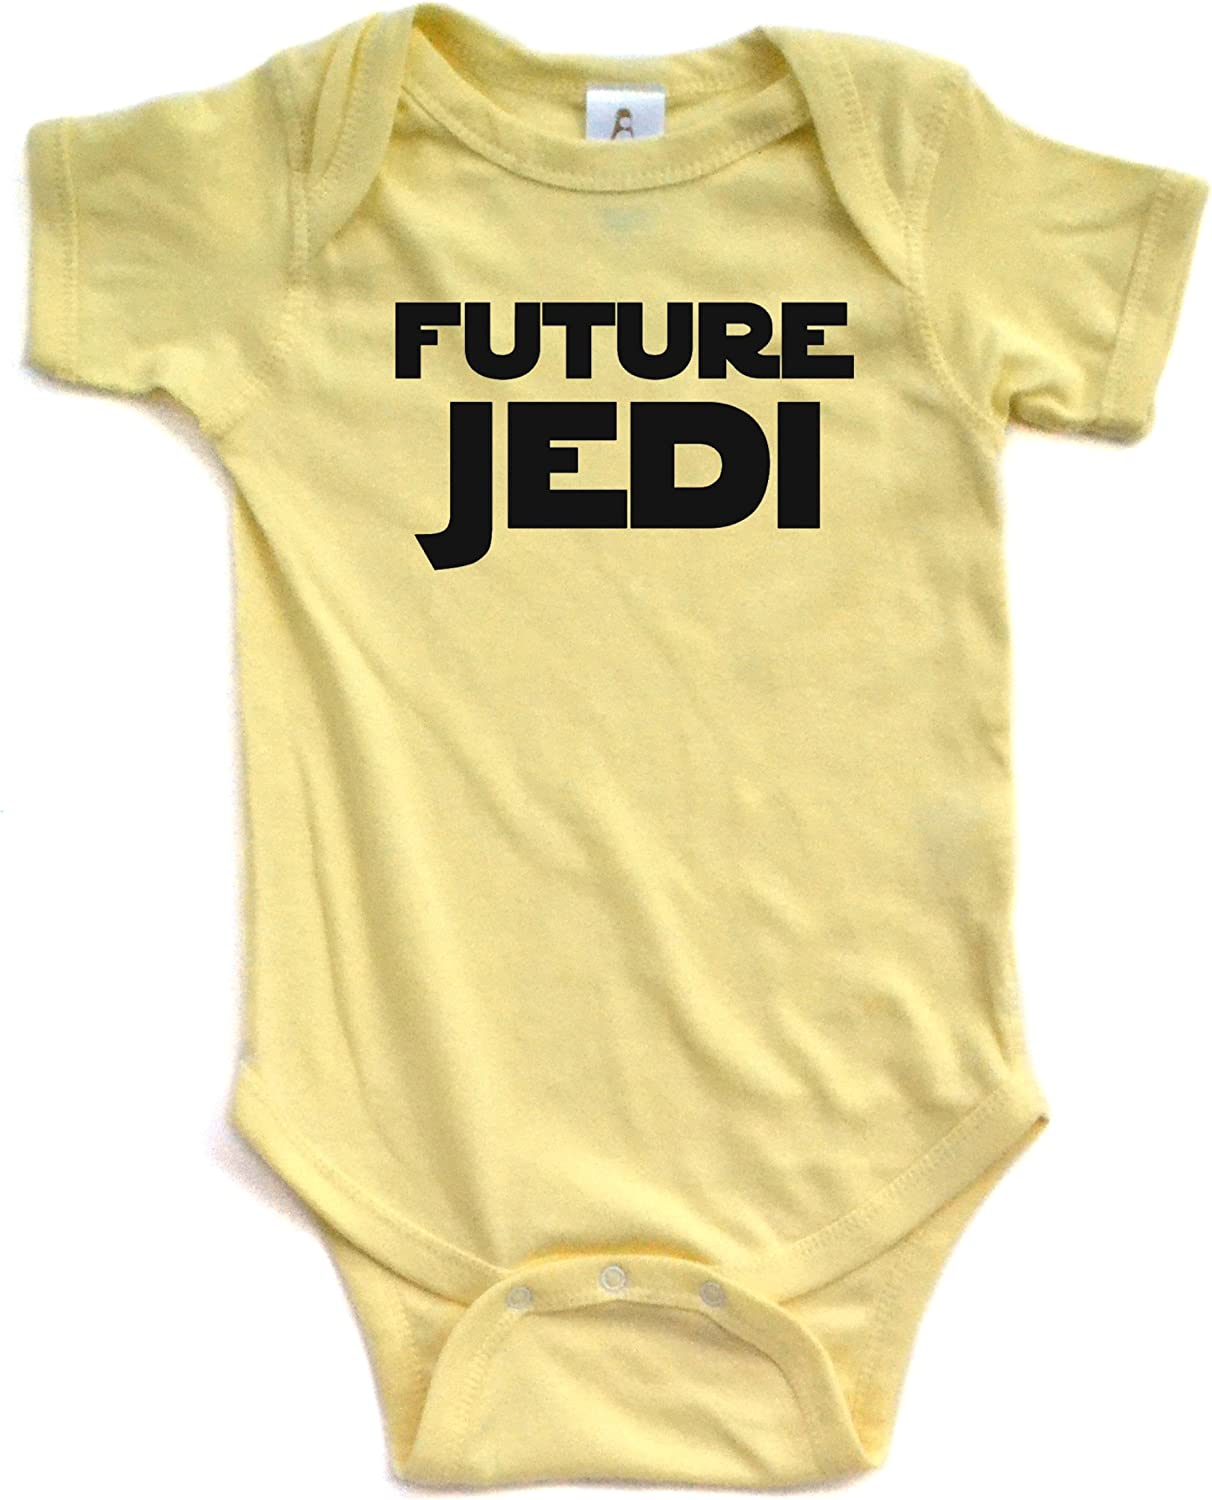 Apericots Adorable Future Jedi Soft and Comfy Cute Baby Short Sleeve Cotton Infant Bodysuit